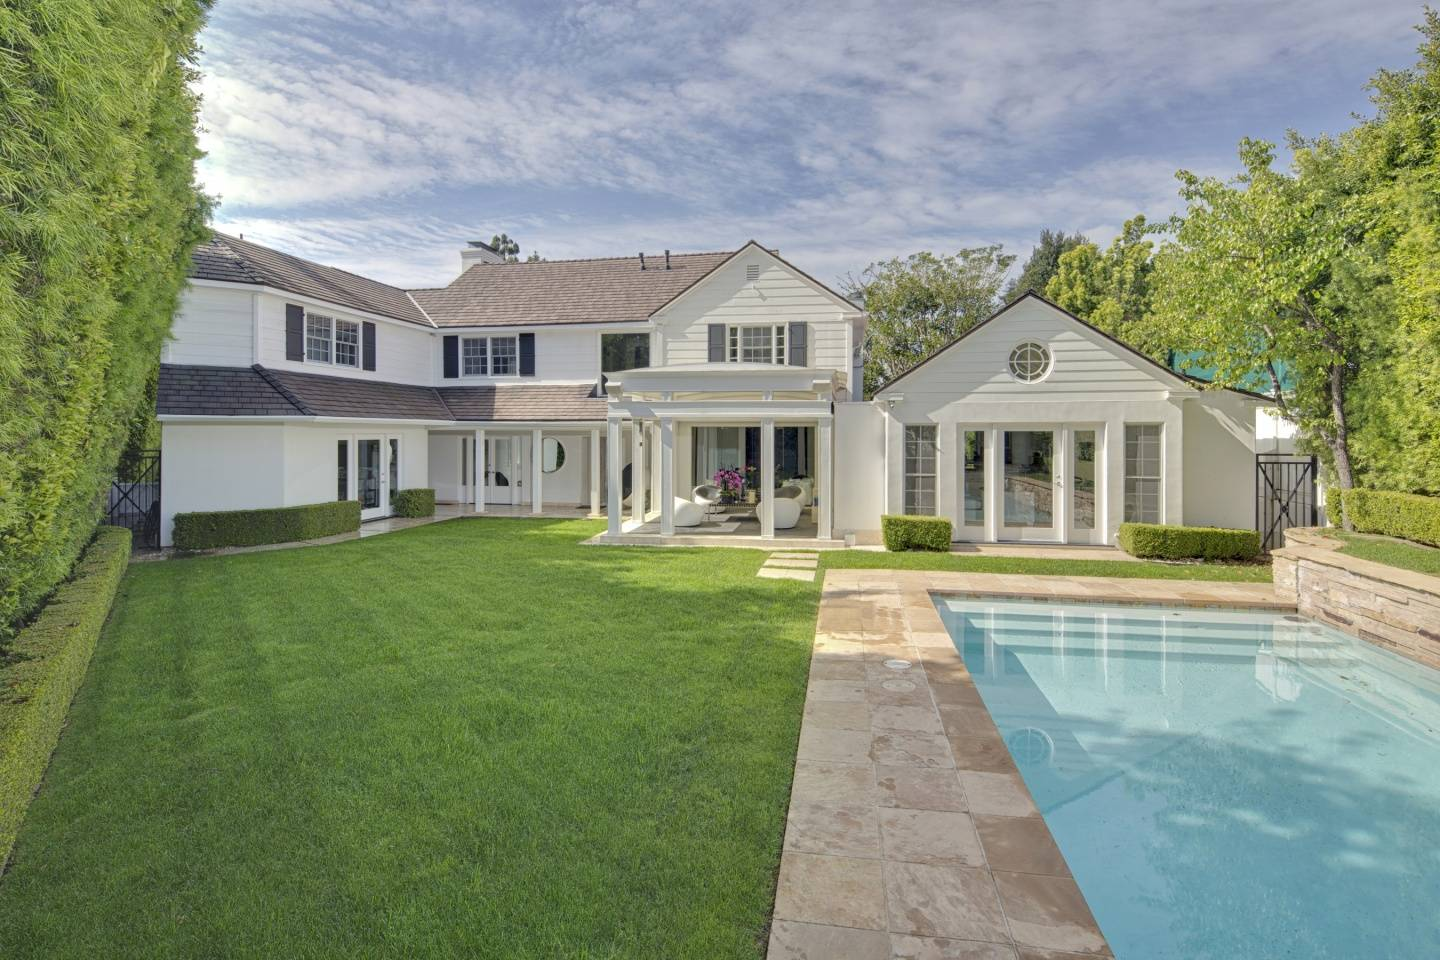 Linda May Discusses the Lifestyle in Holmby Hills